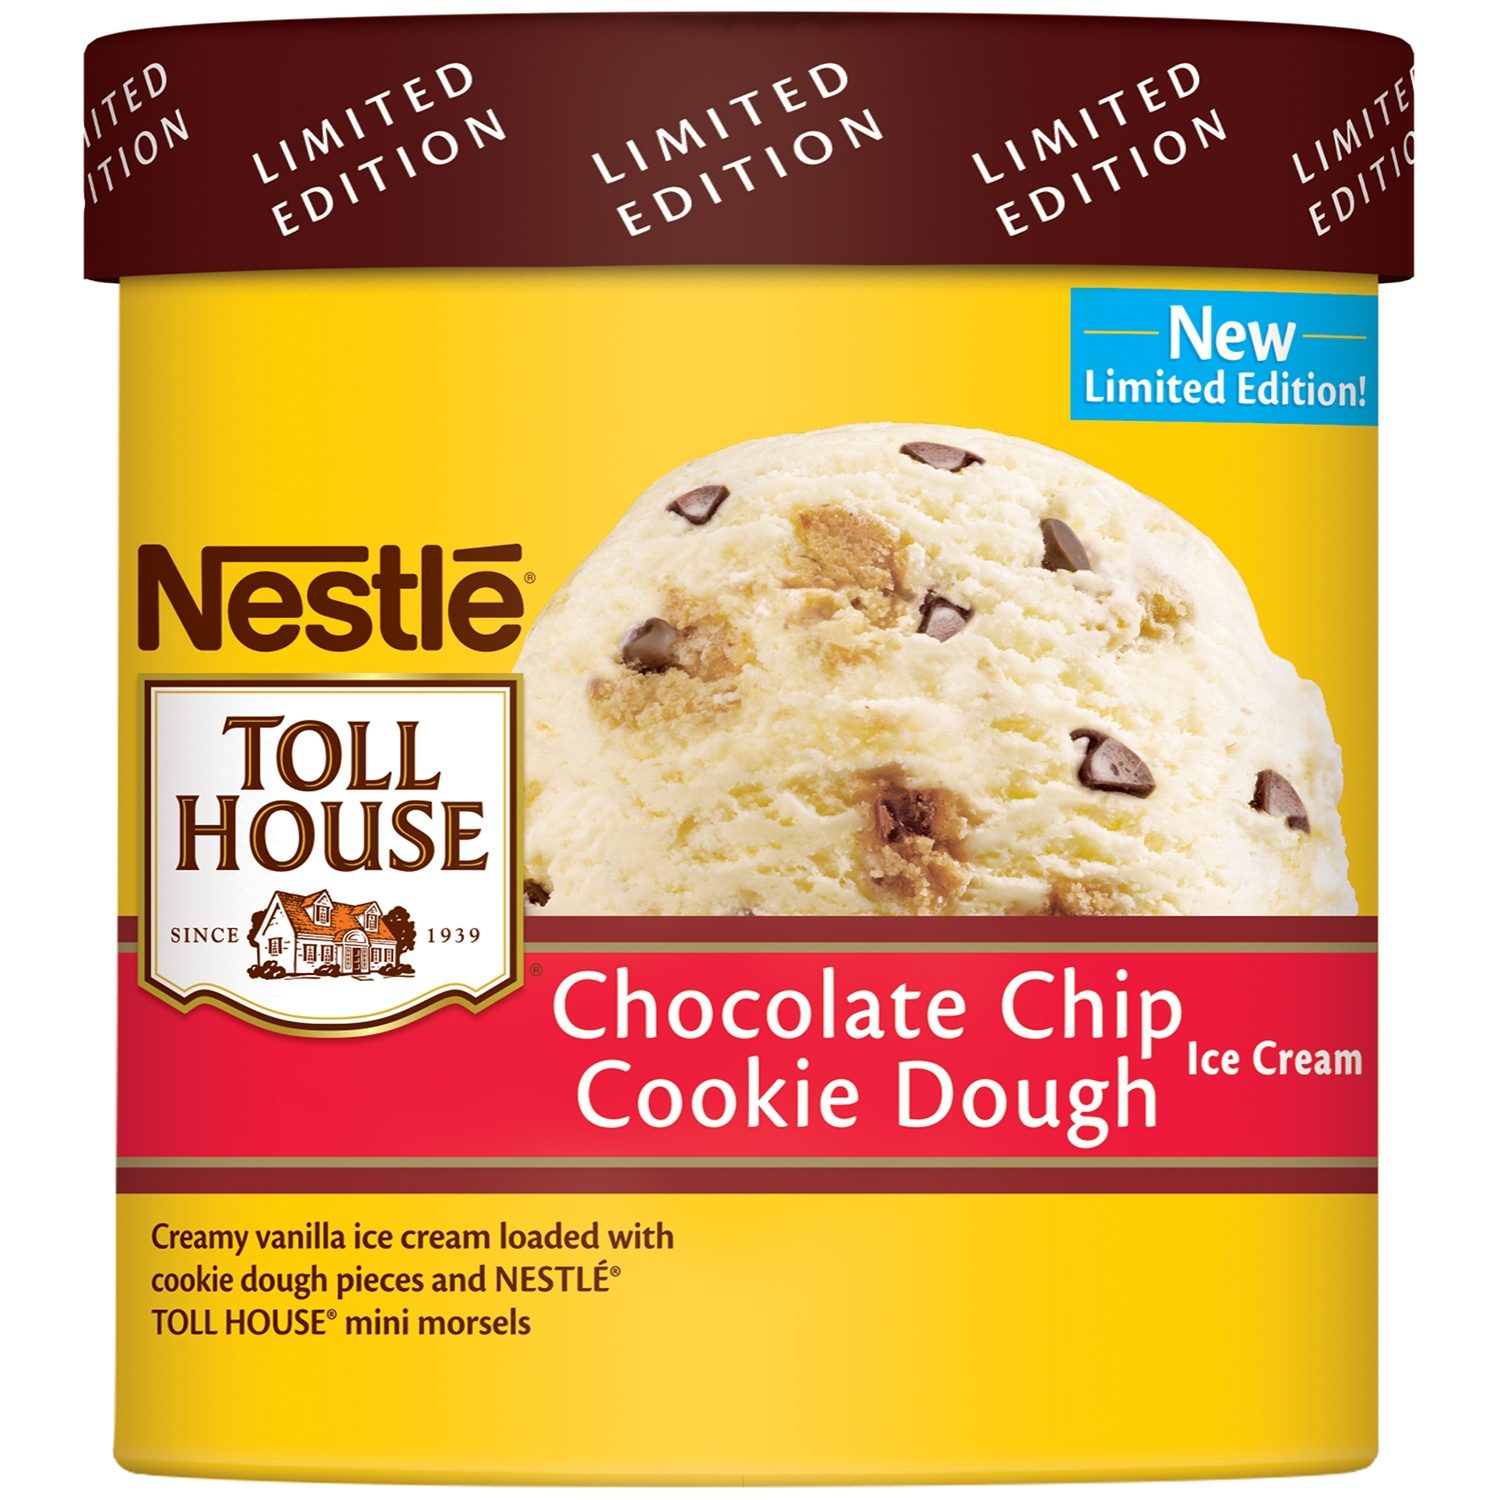 Nestl Toll House Limited Edition Chocolate Chip Cookie Dough ...